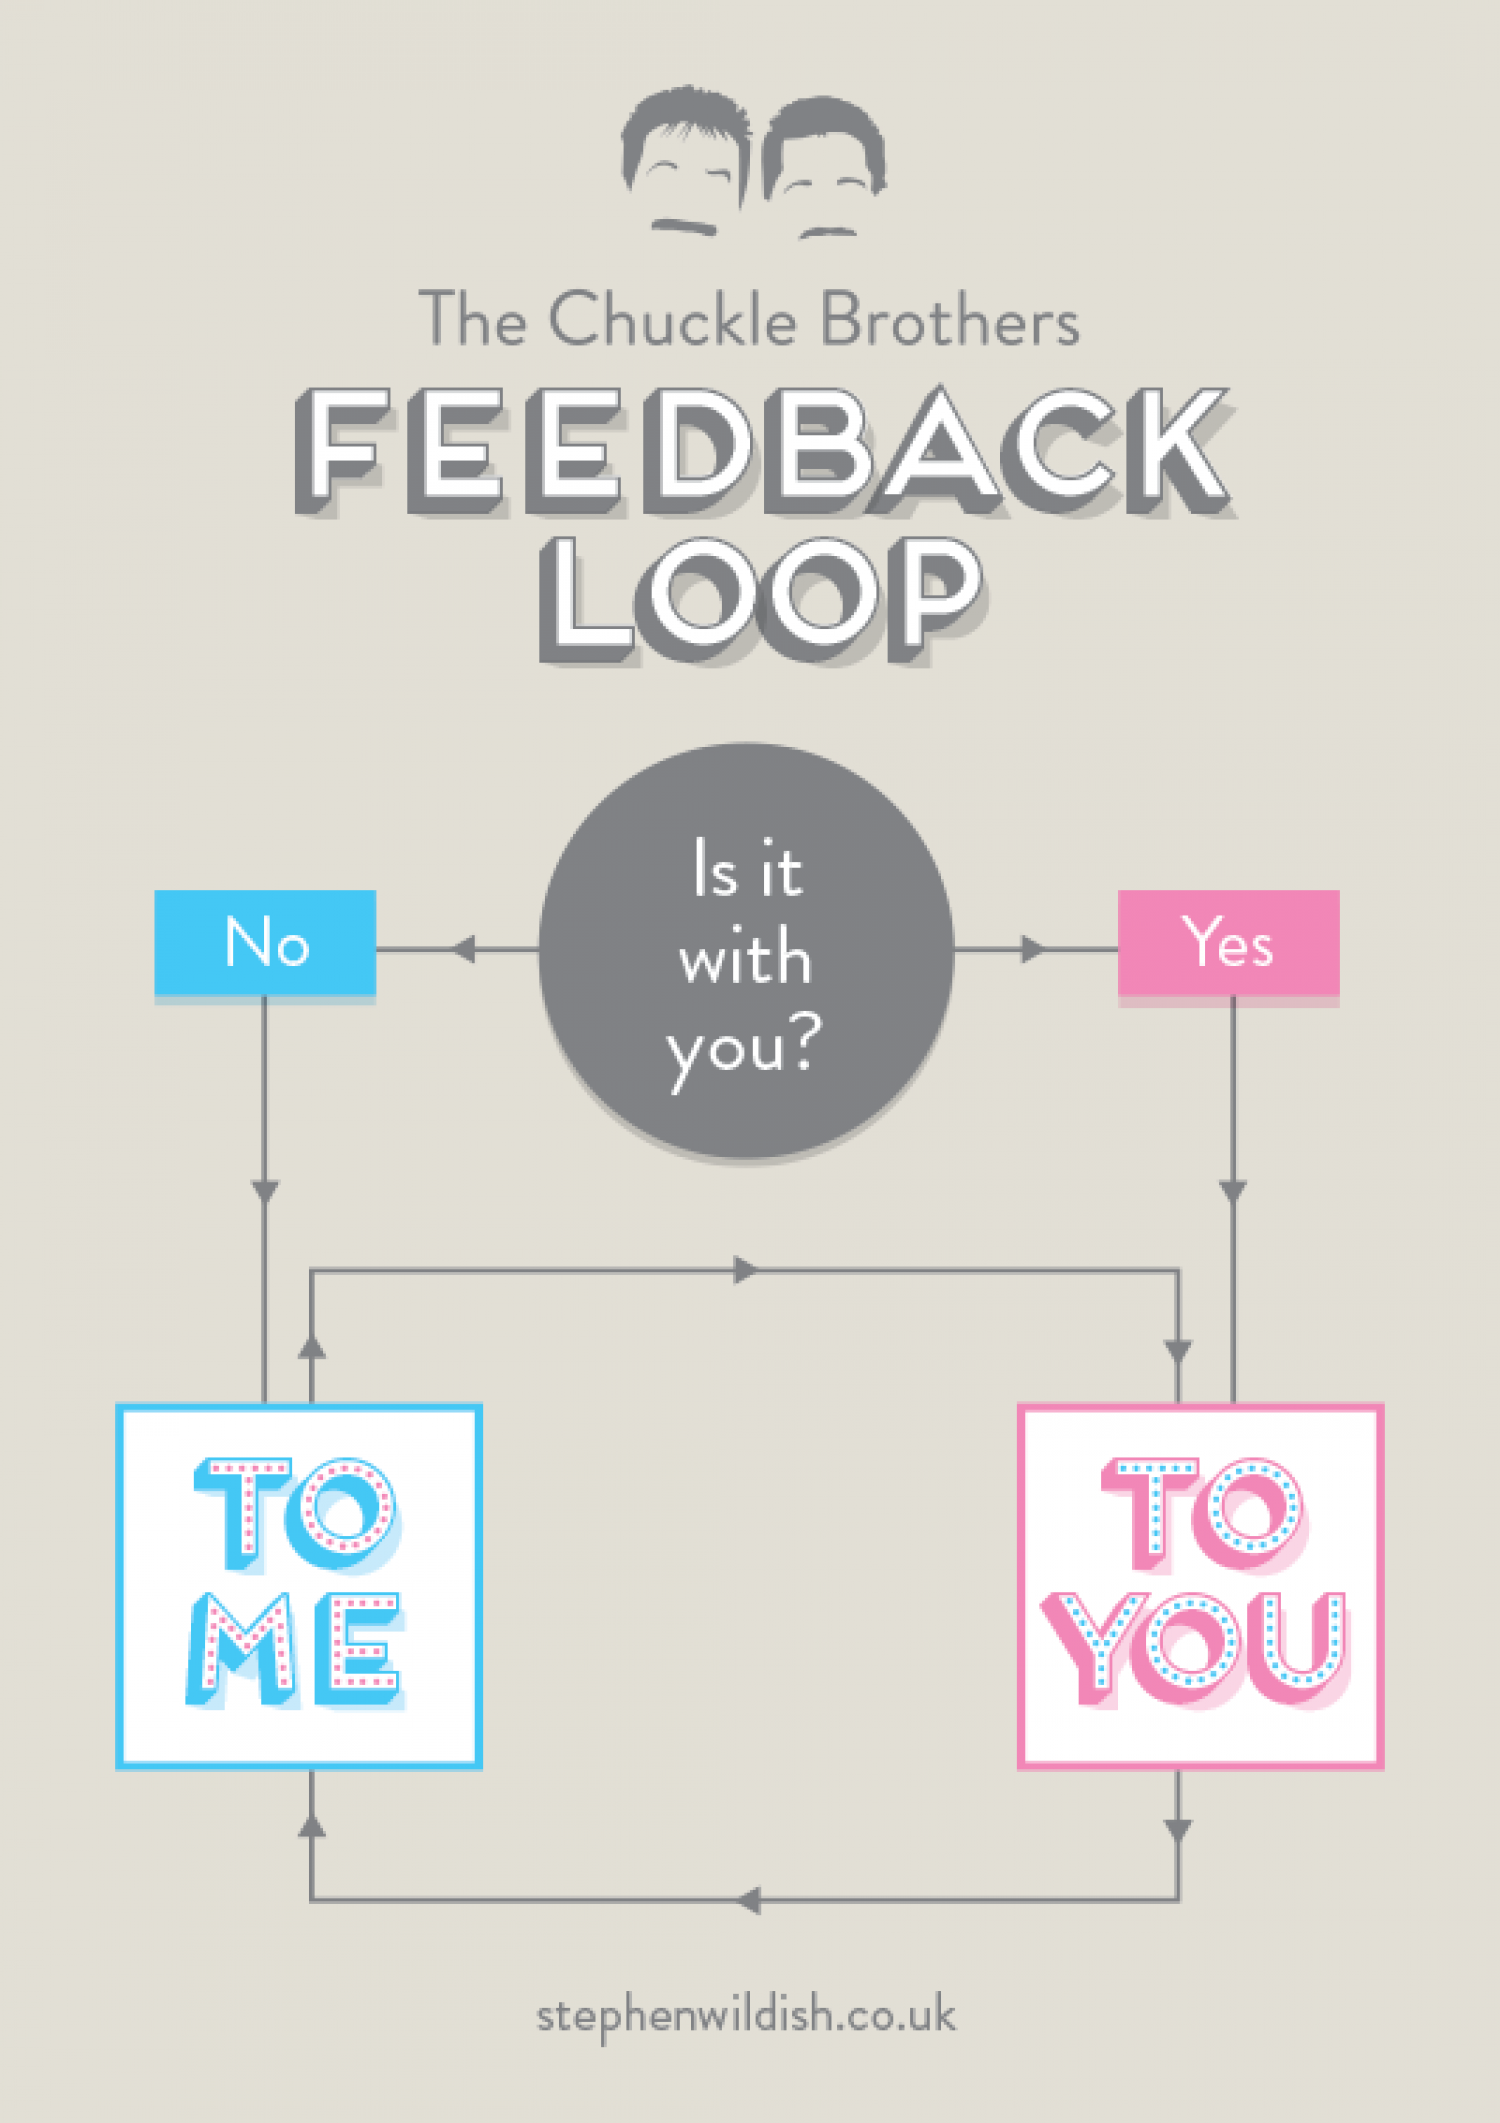 The Chuckle Brothers Feedback Loop Infographic